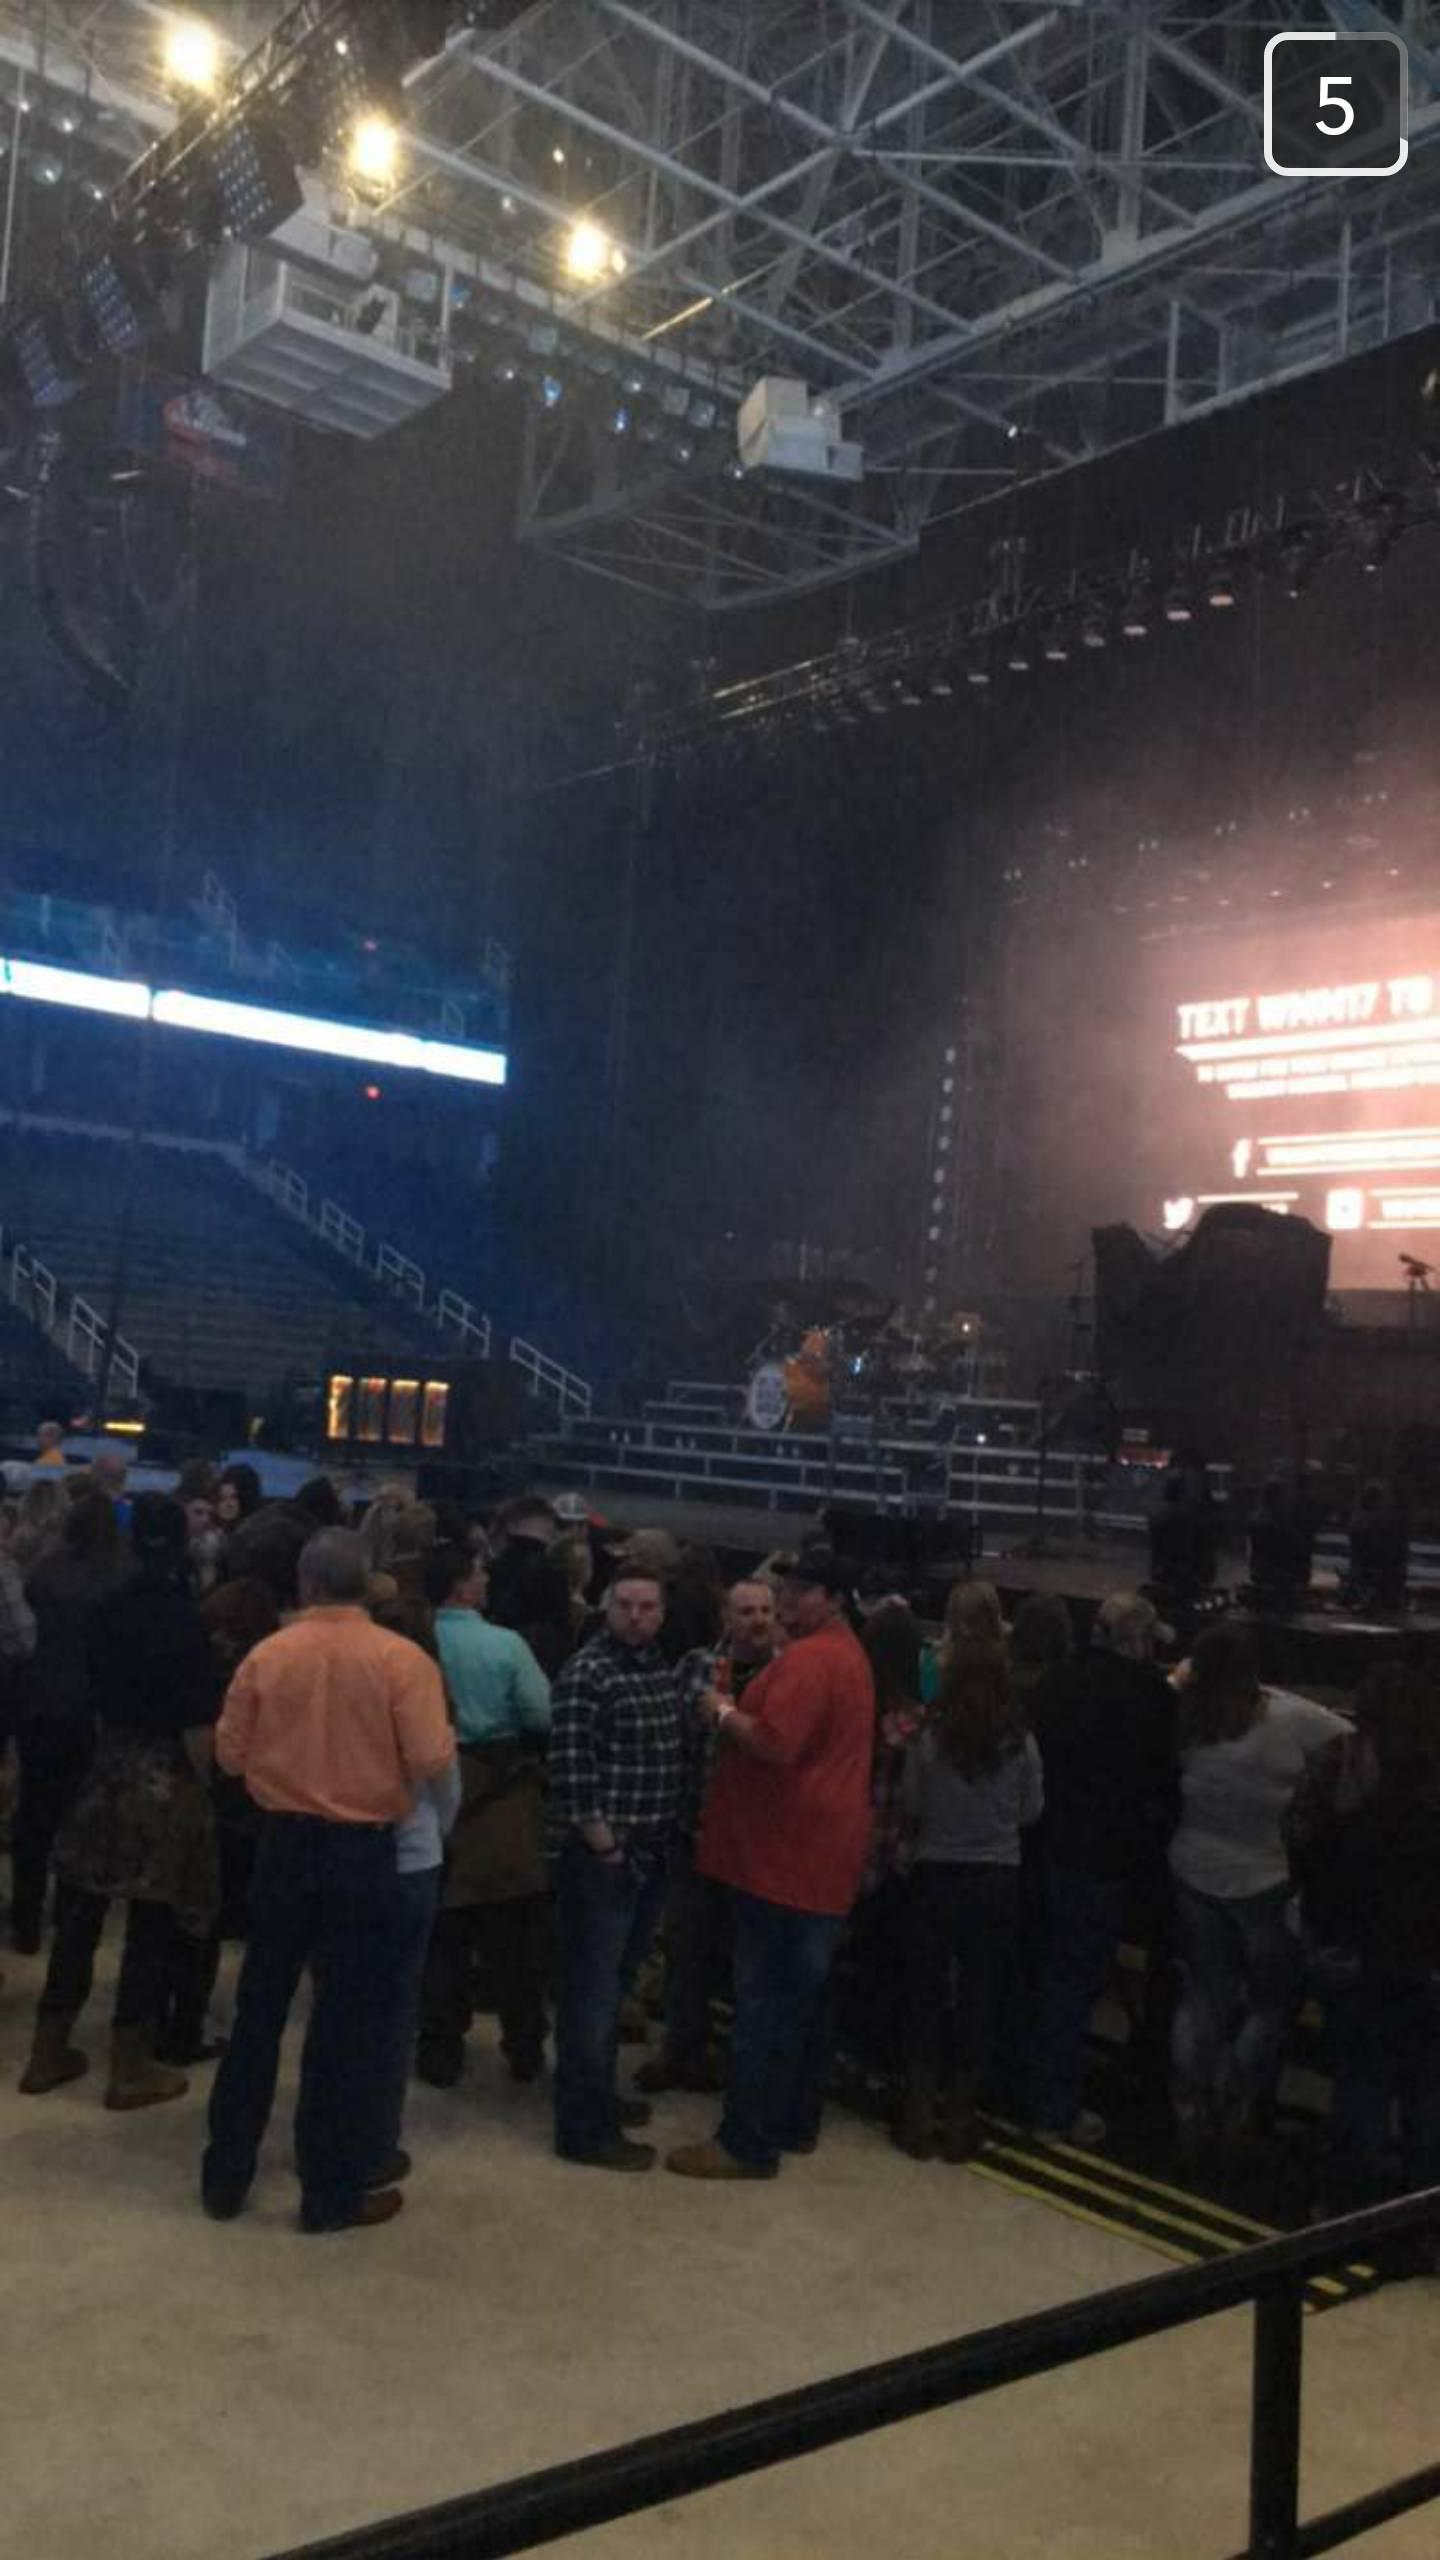 Greensboro Coliseum Section 125 Row D Seat 12